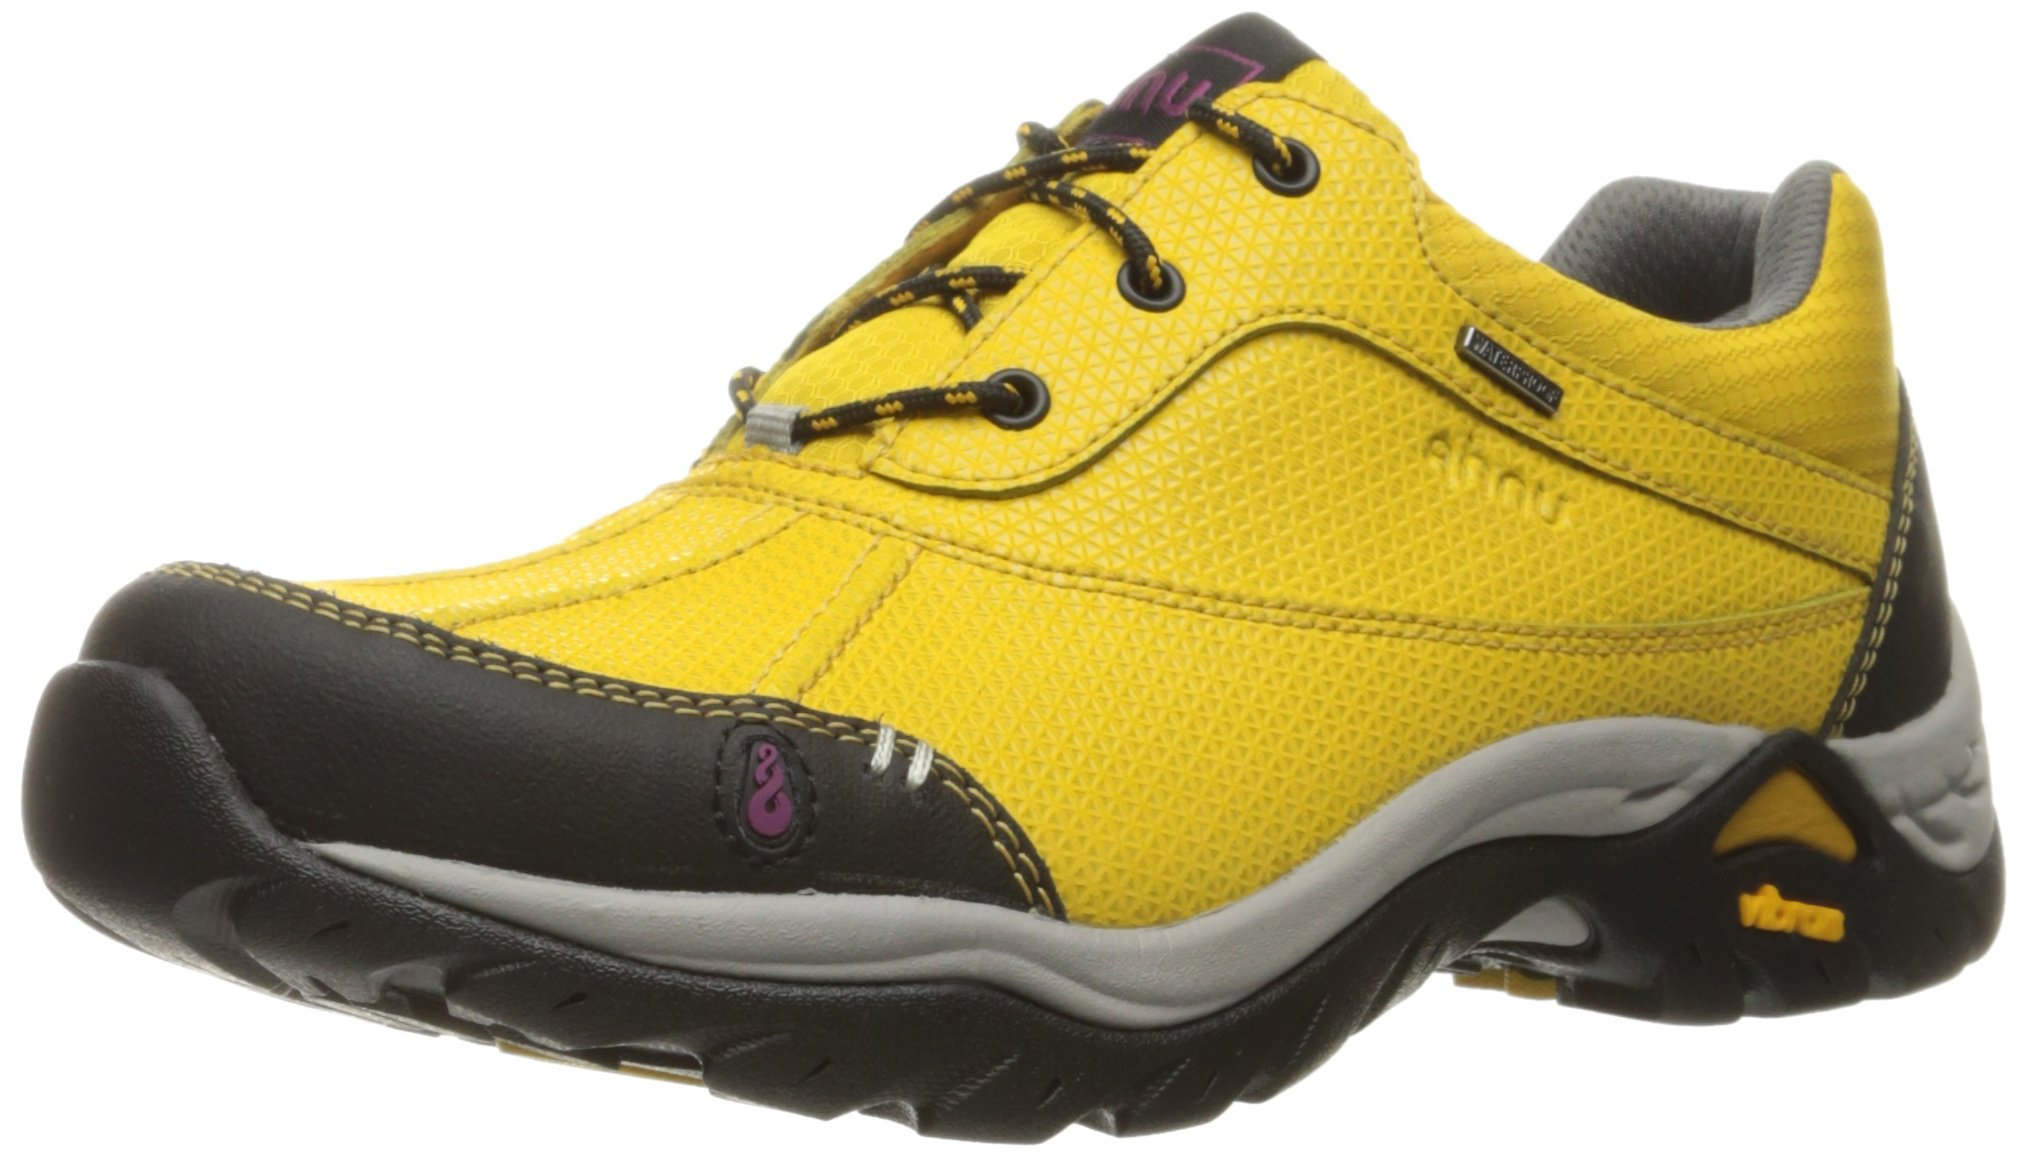 Ahnu Women's Calaveras Waterproof Hiking Shoe, Golden Mustard, 9 M US by Ahnu